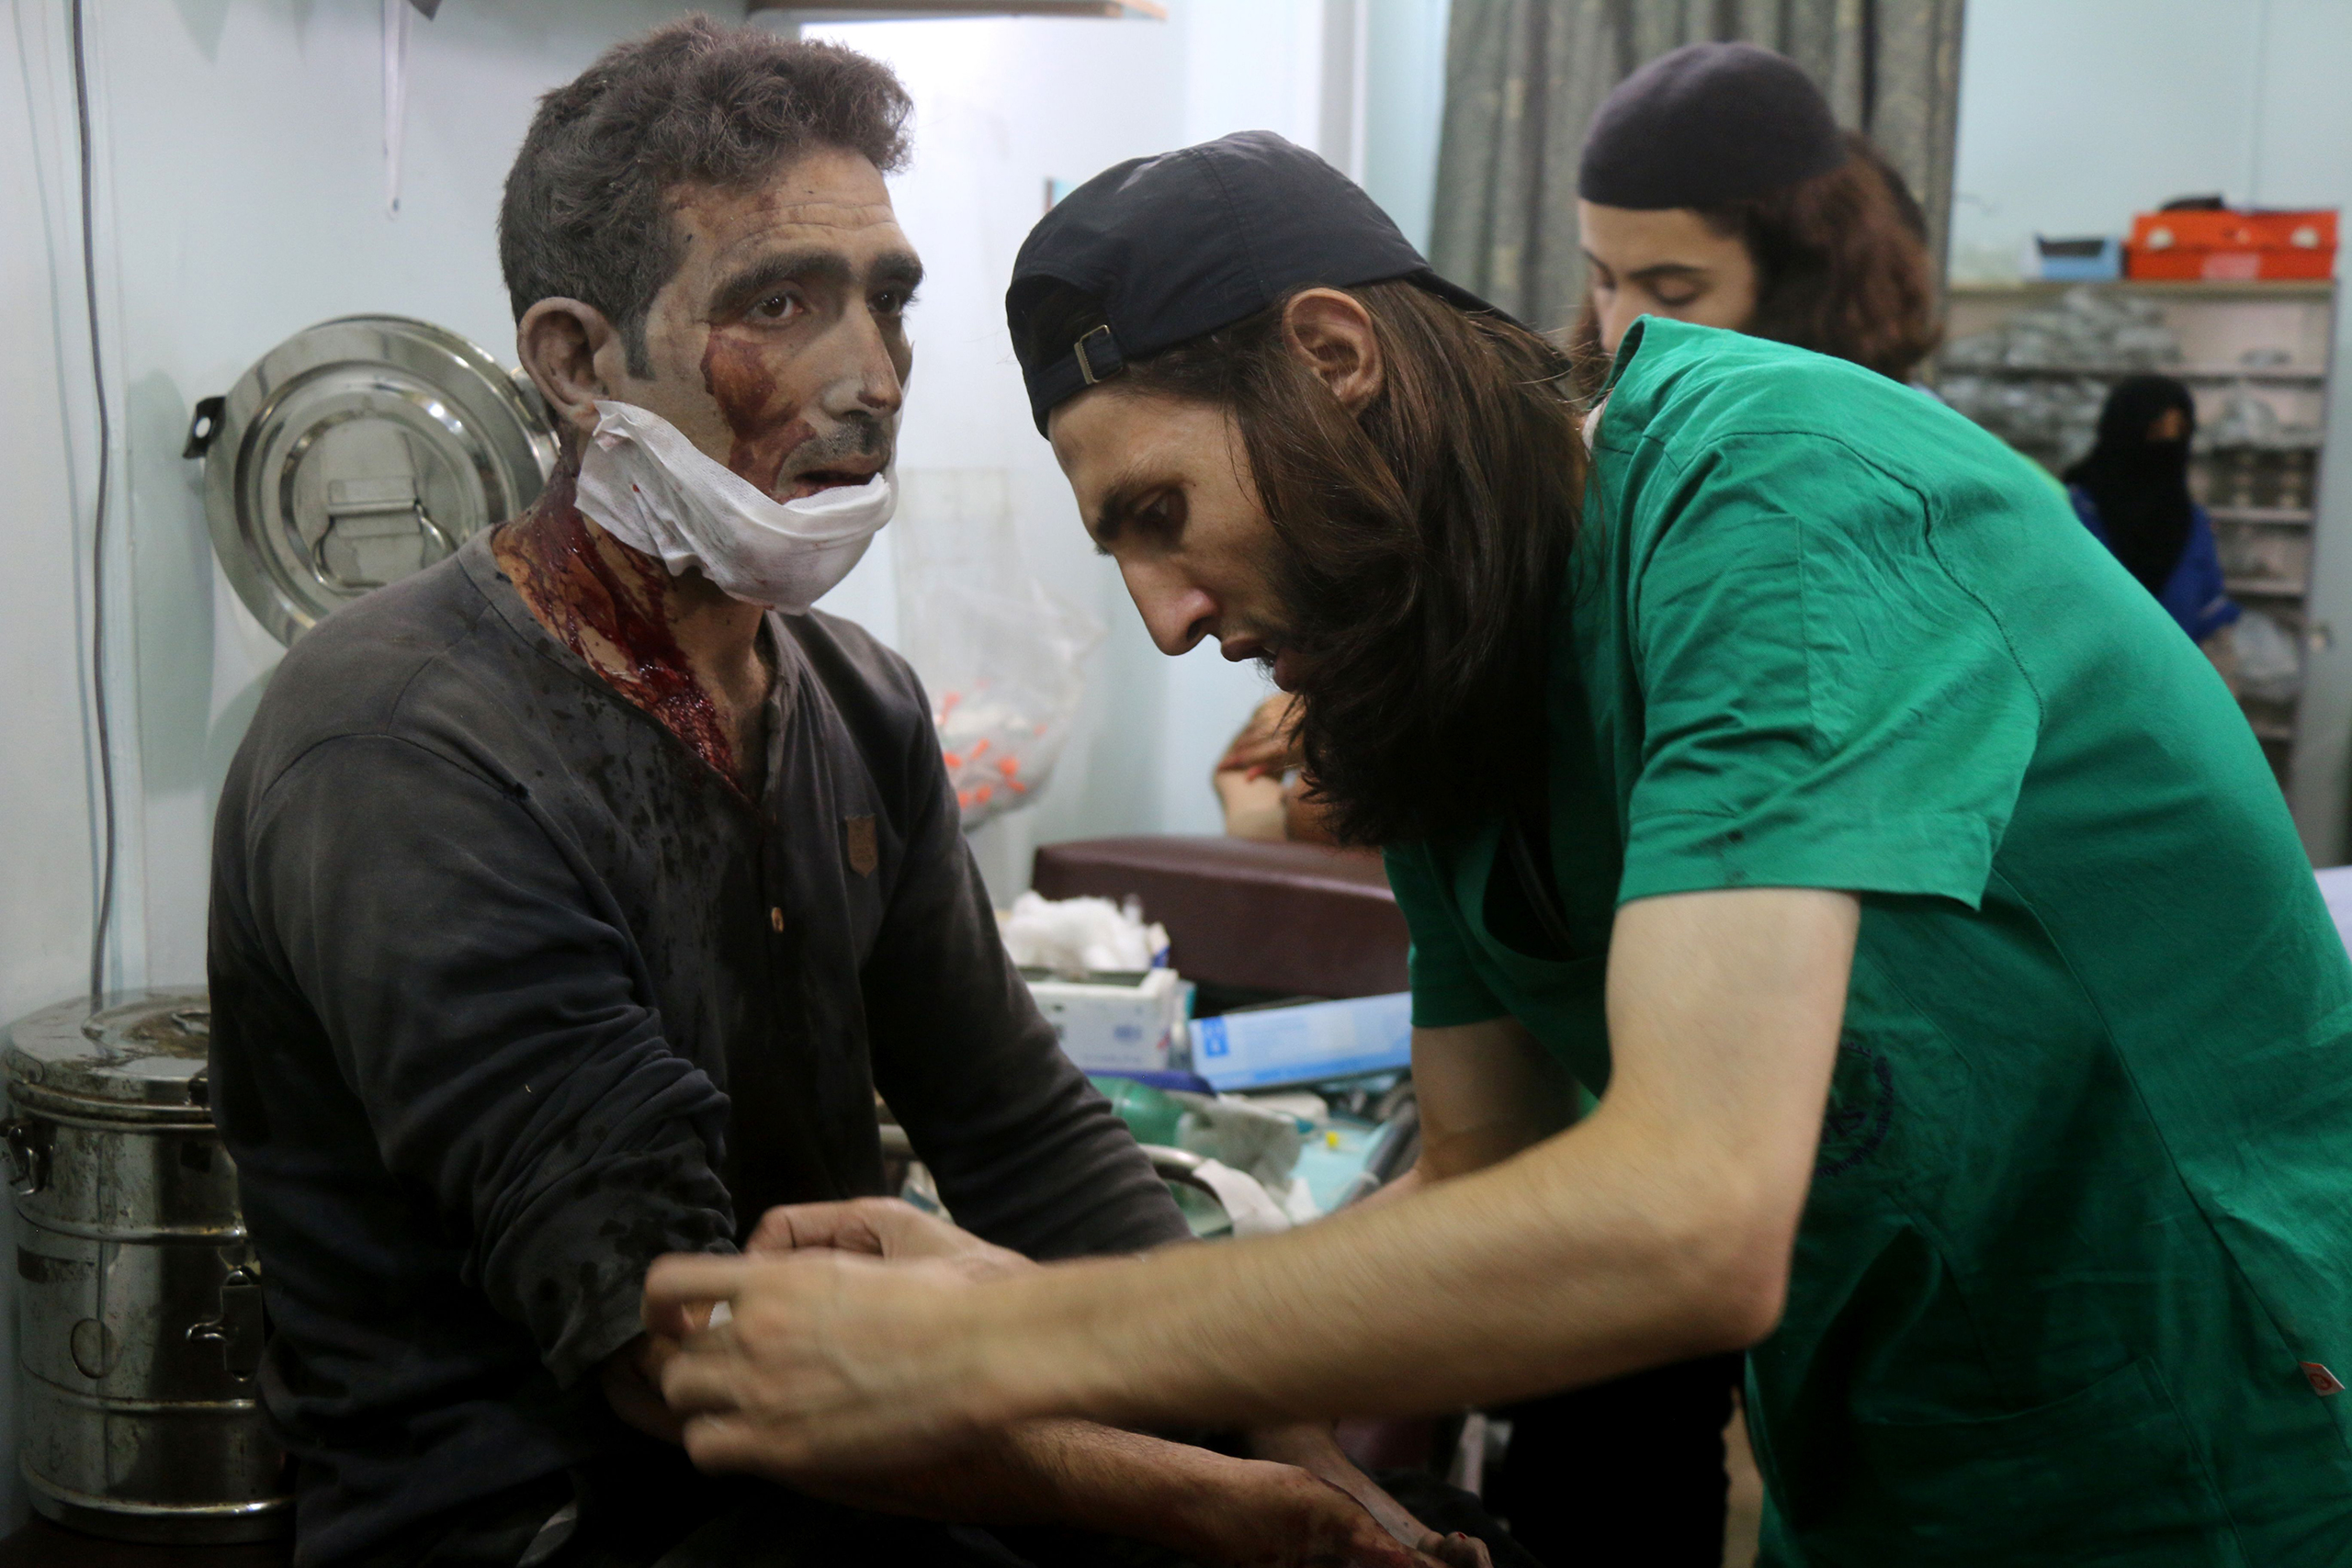 Syrian medics treat a man at a makeshift hospital in the Tariq al-Bab neighborhood of Aleppo after he was wounded during reported air raids that targeted rebel-held areas on Aug. 16, 2016.